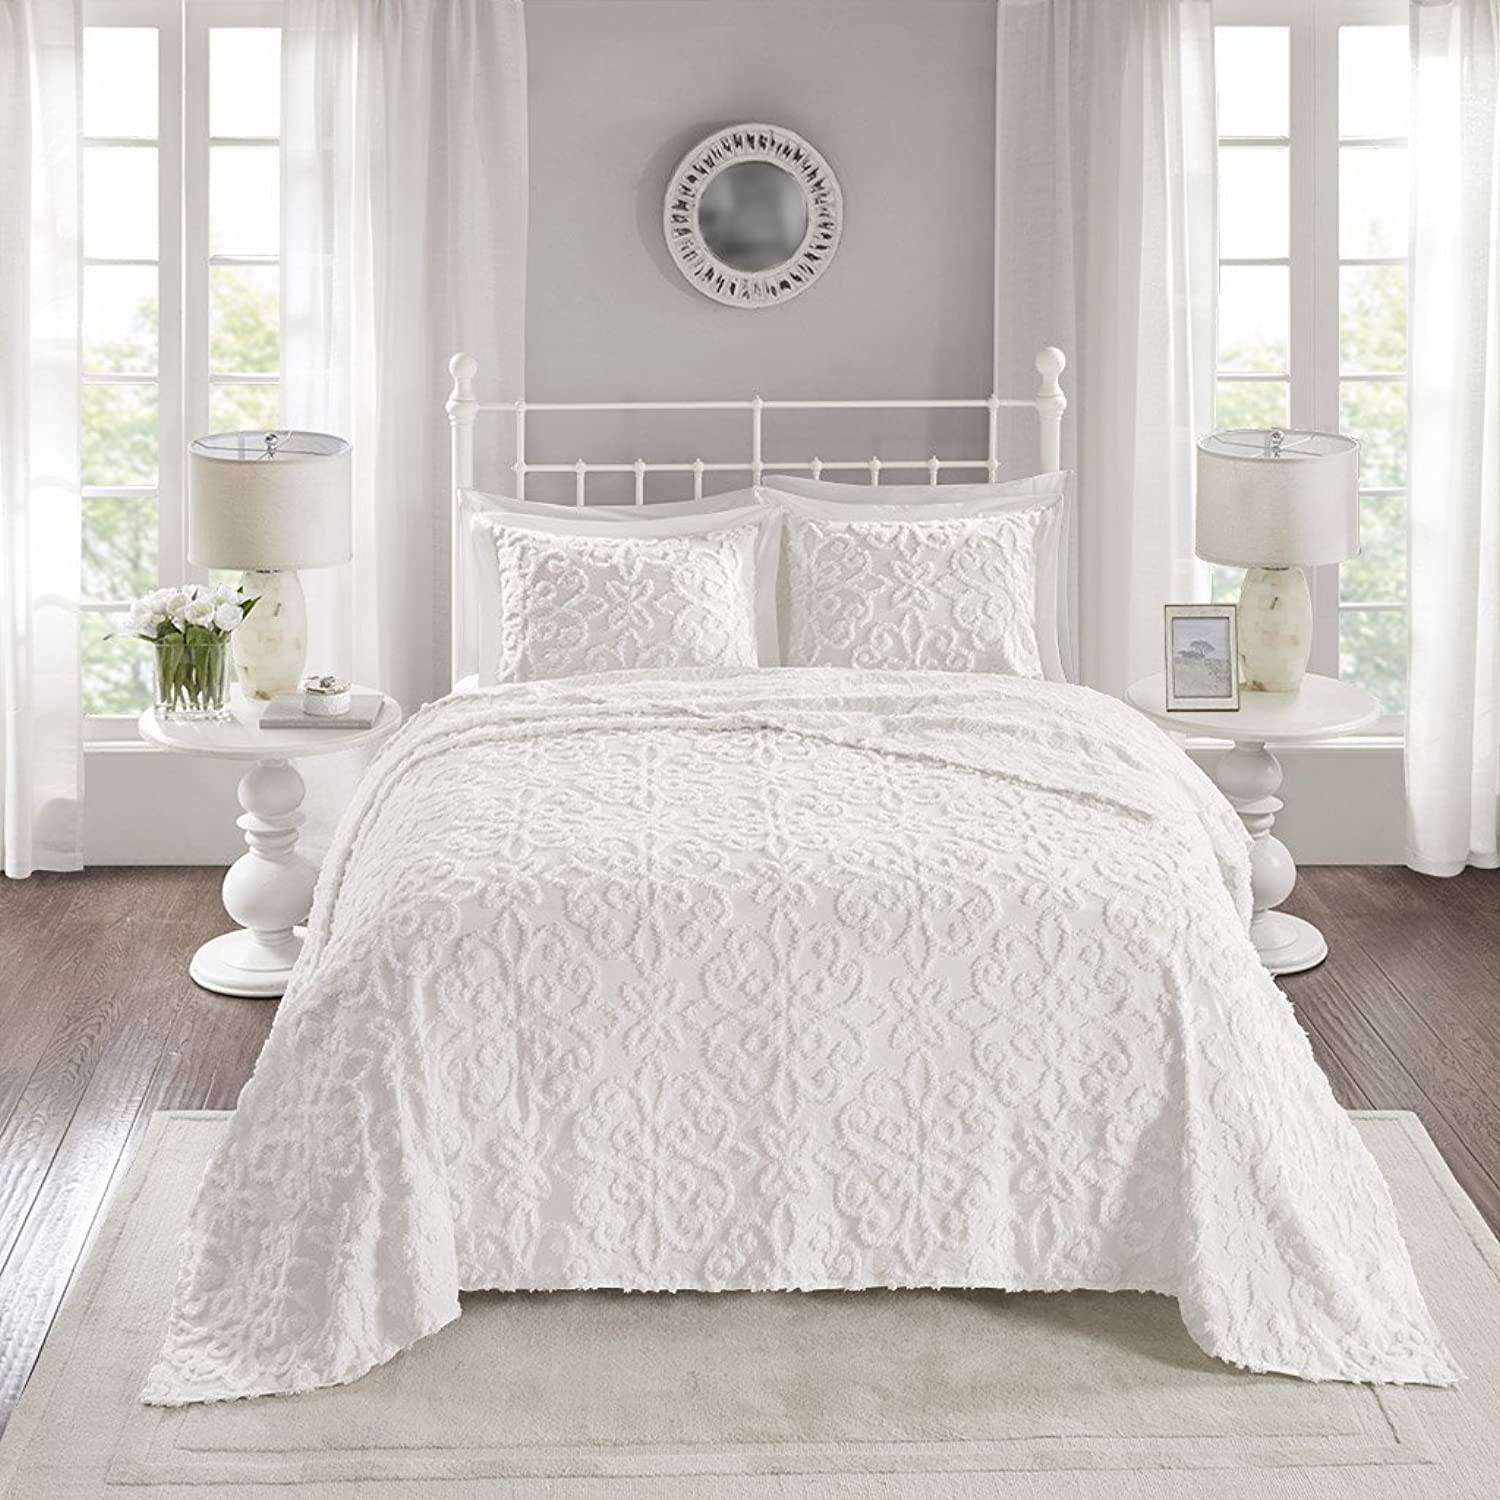 Madison Park Sabrina 3 Piece Tufted Cotton Chenille Quilt Set Coverlet Bedding, Full Queen Size, White